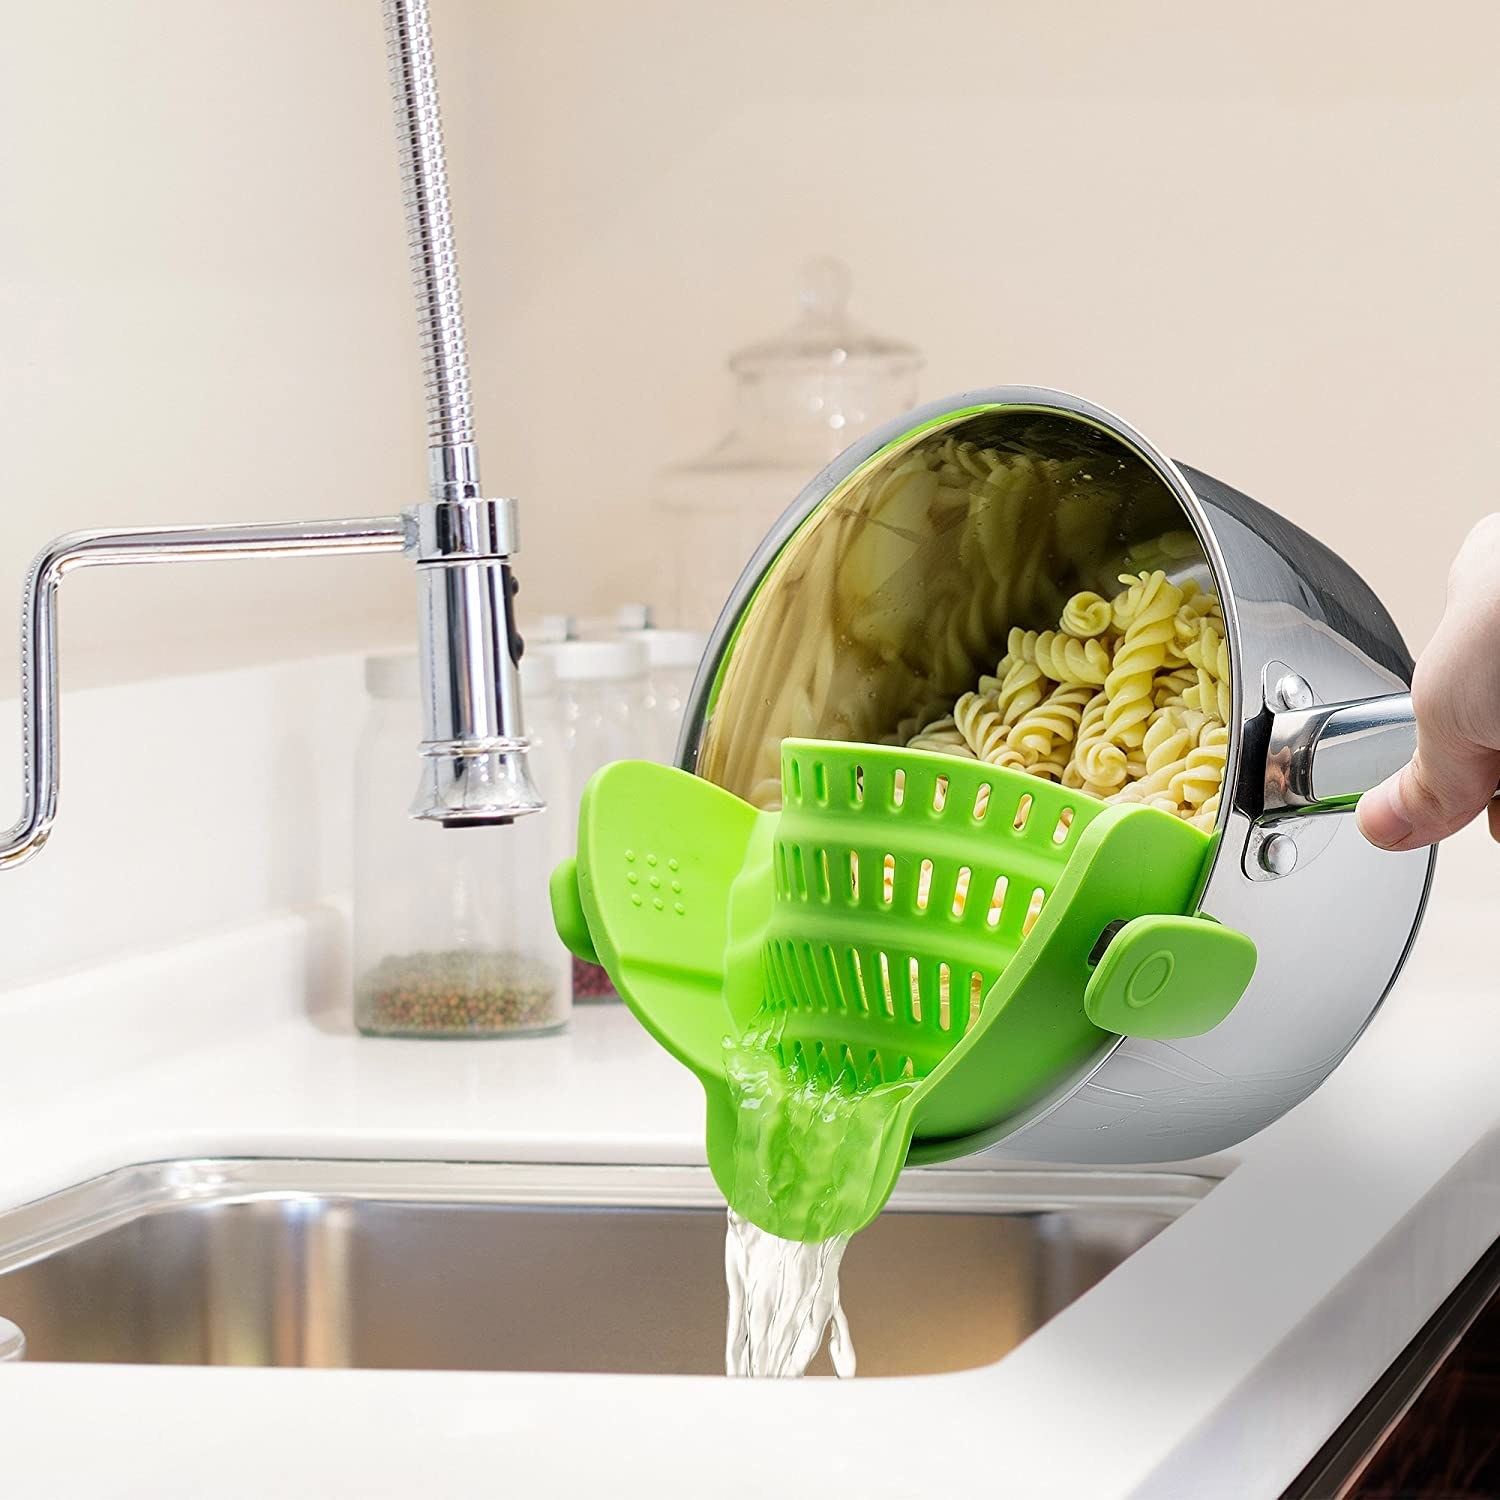 A person pouring pasta water into their sink through the strainer